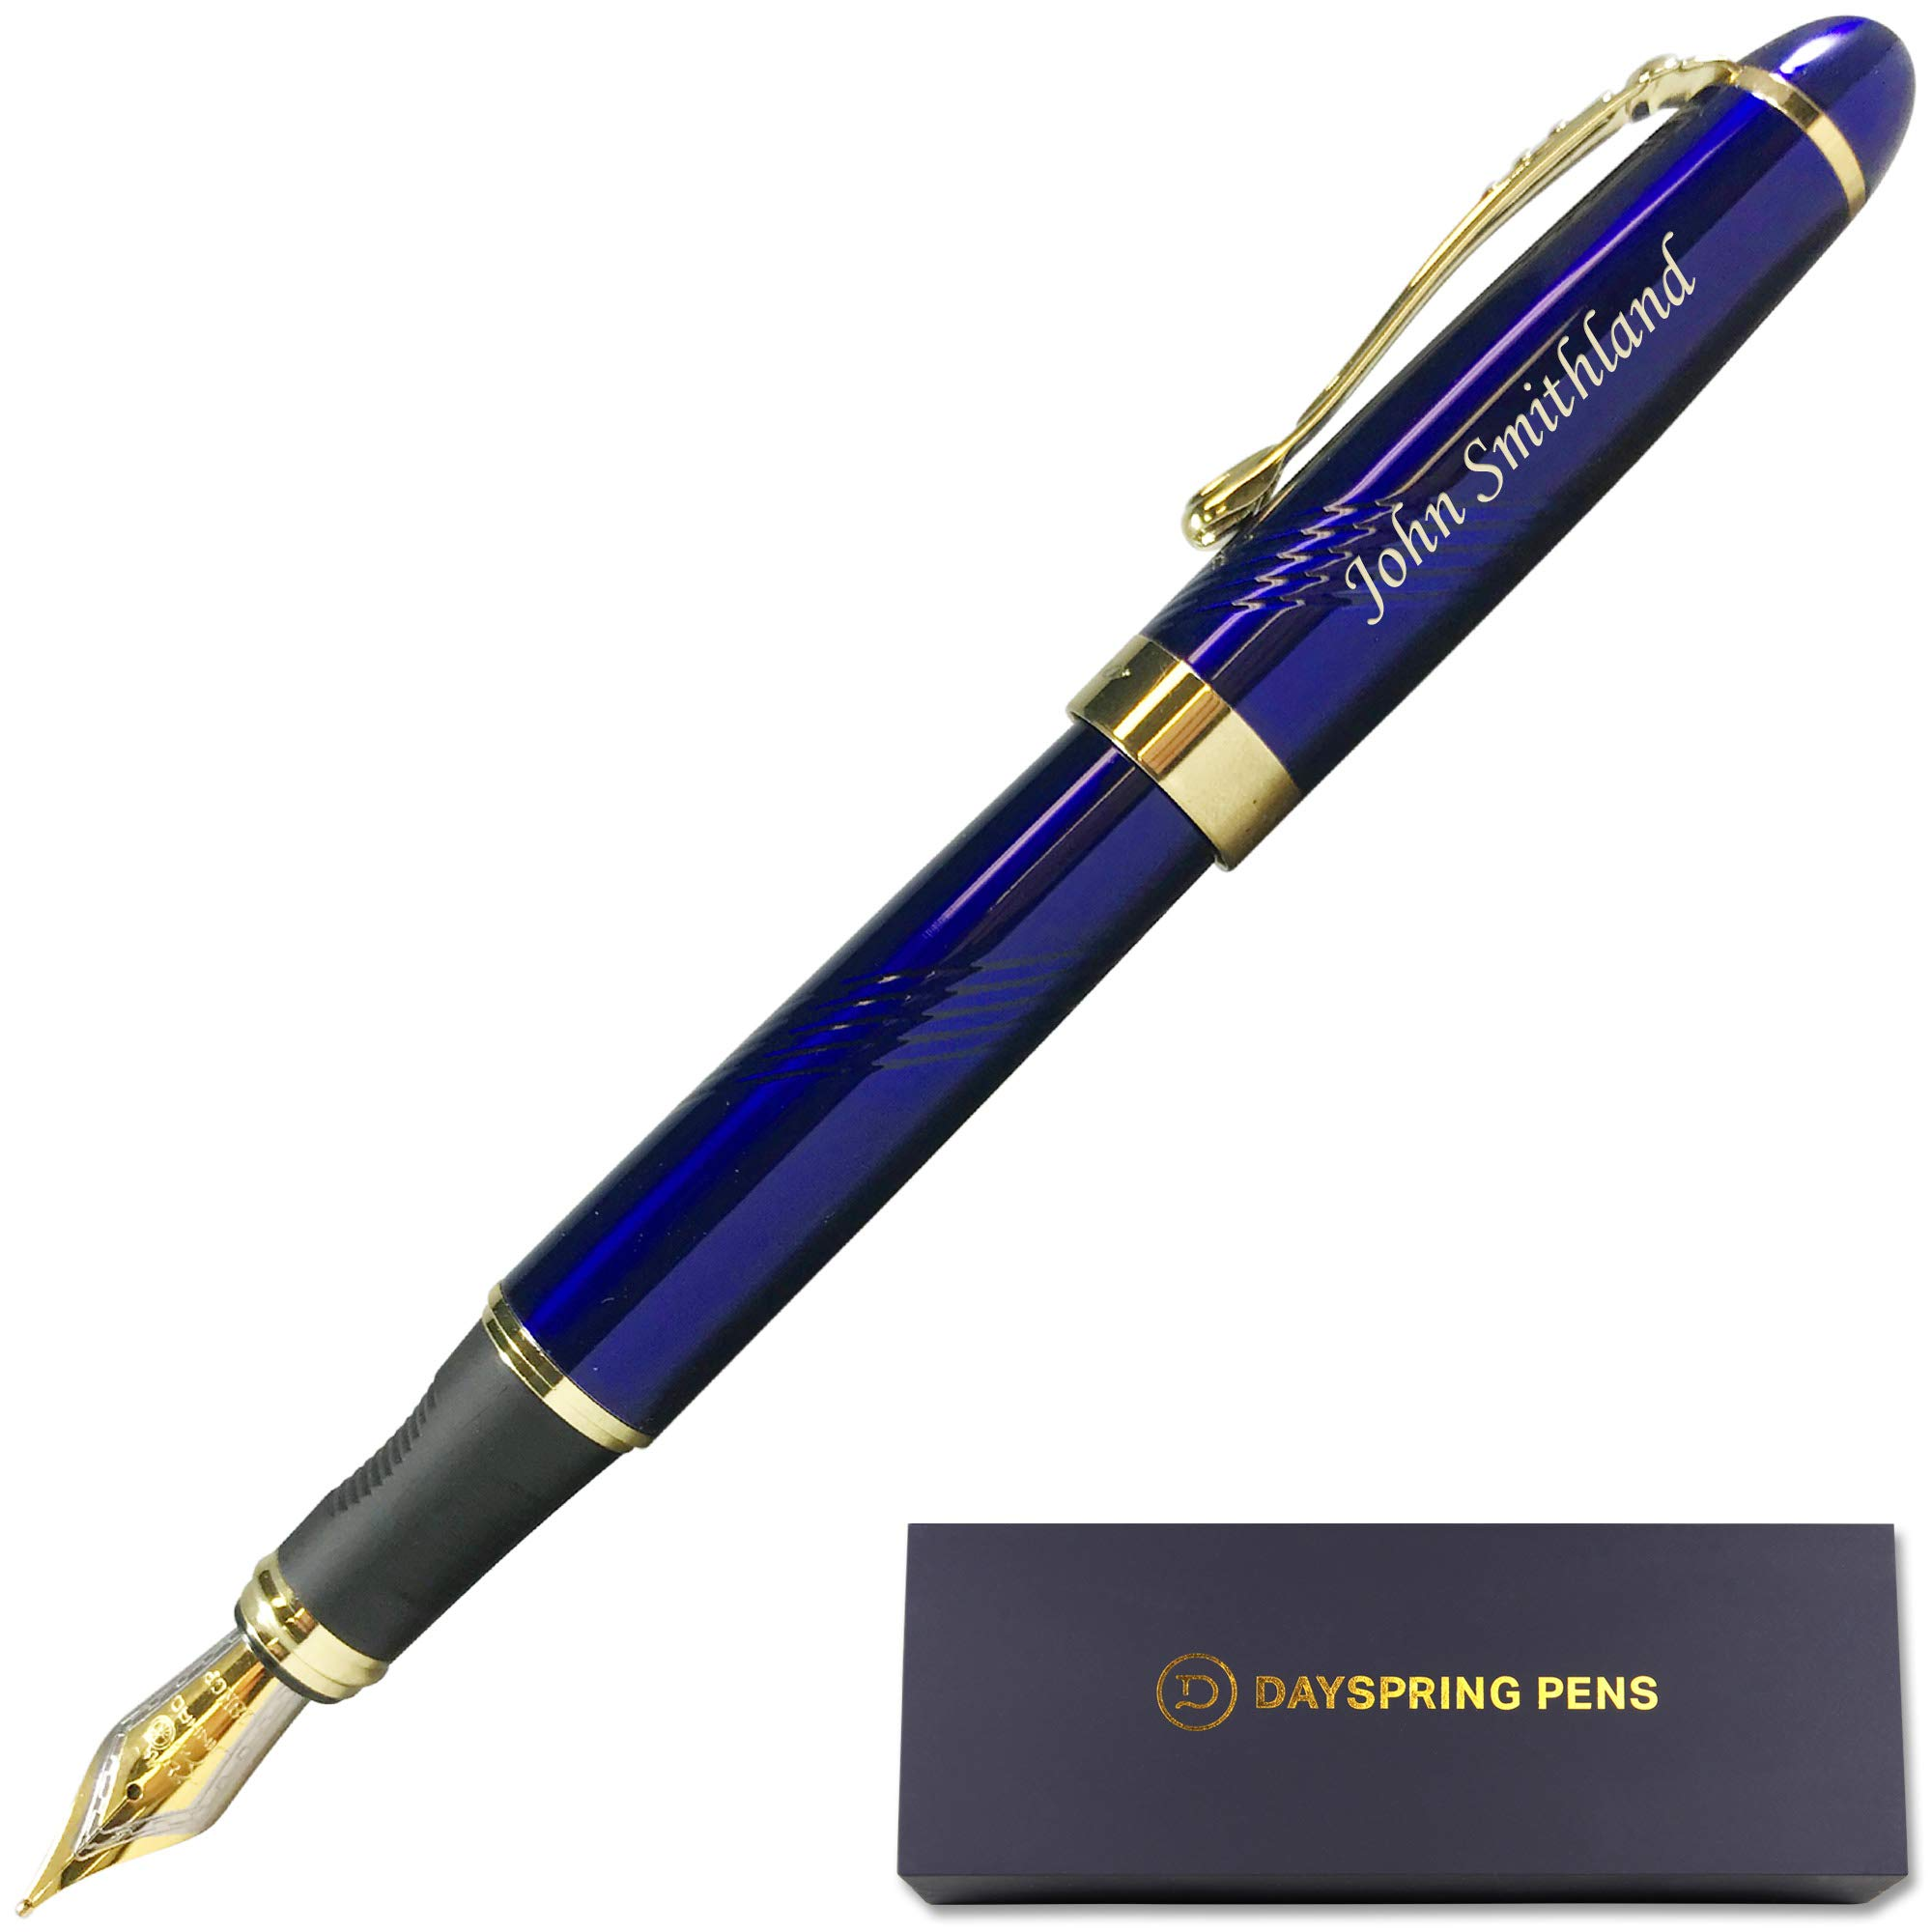 Dayspring Pens   Personalized Pen Arizona Fountain Ink Pen - Blue. Custom Engraved Fast